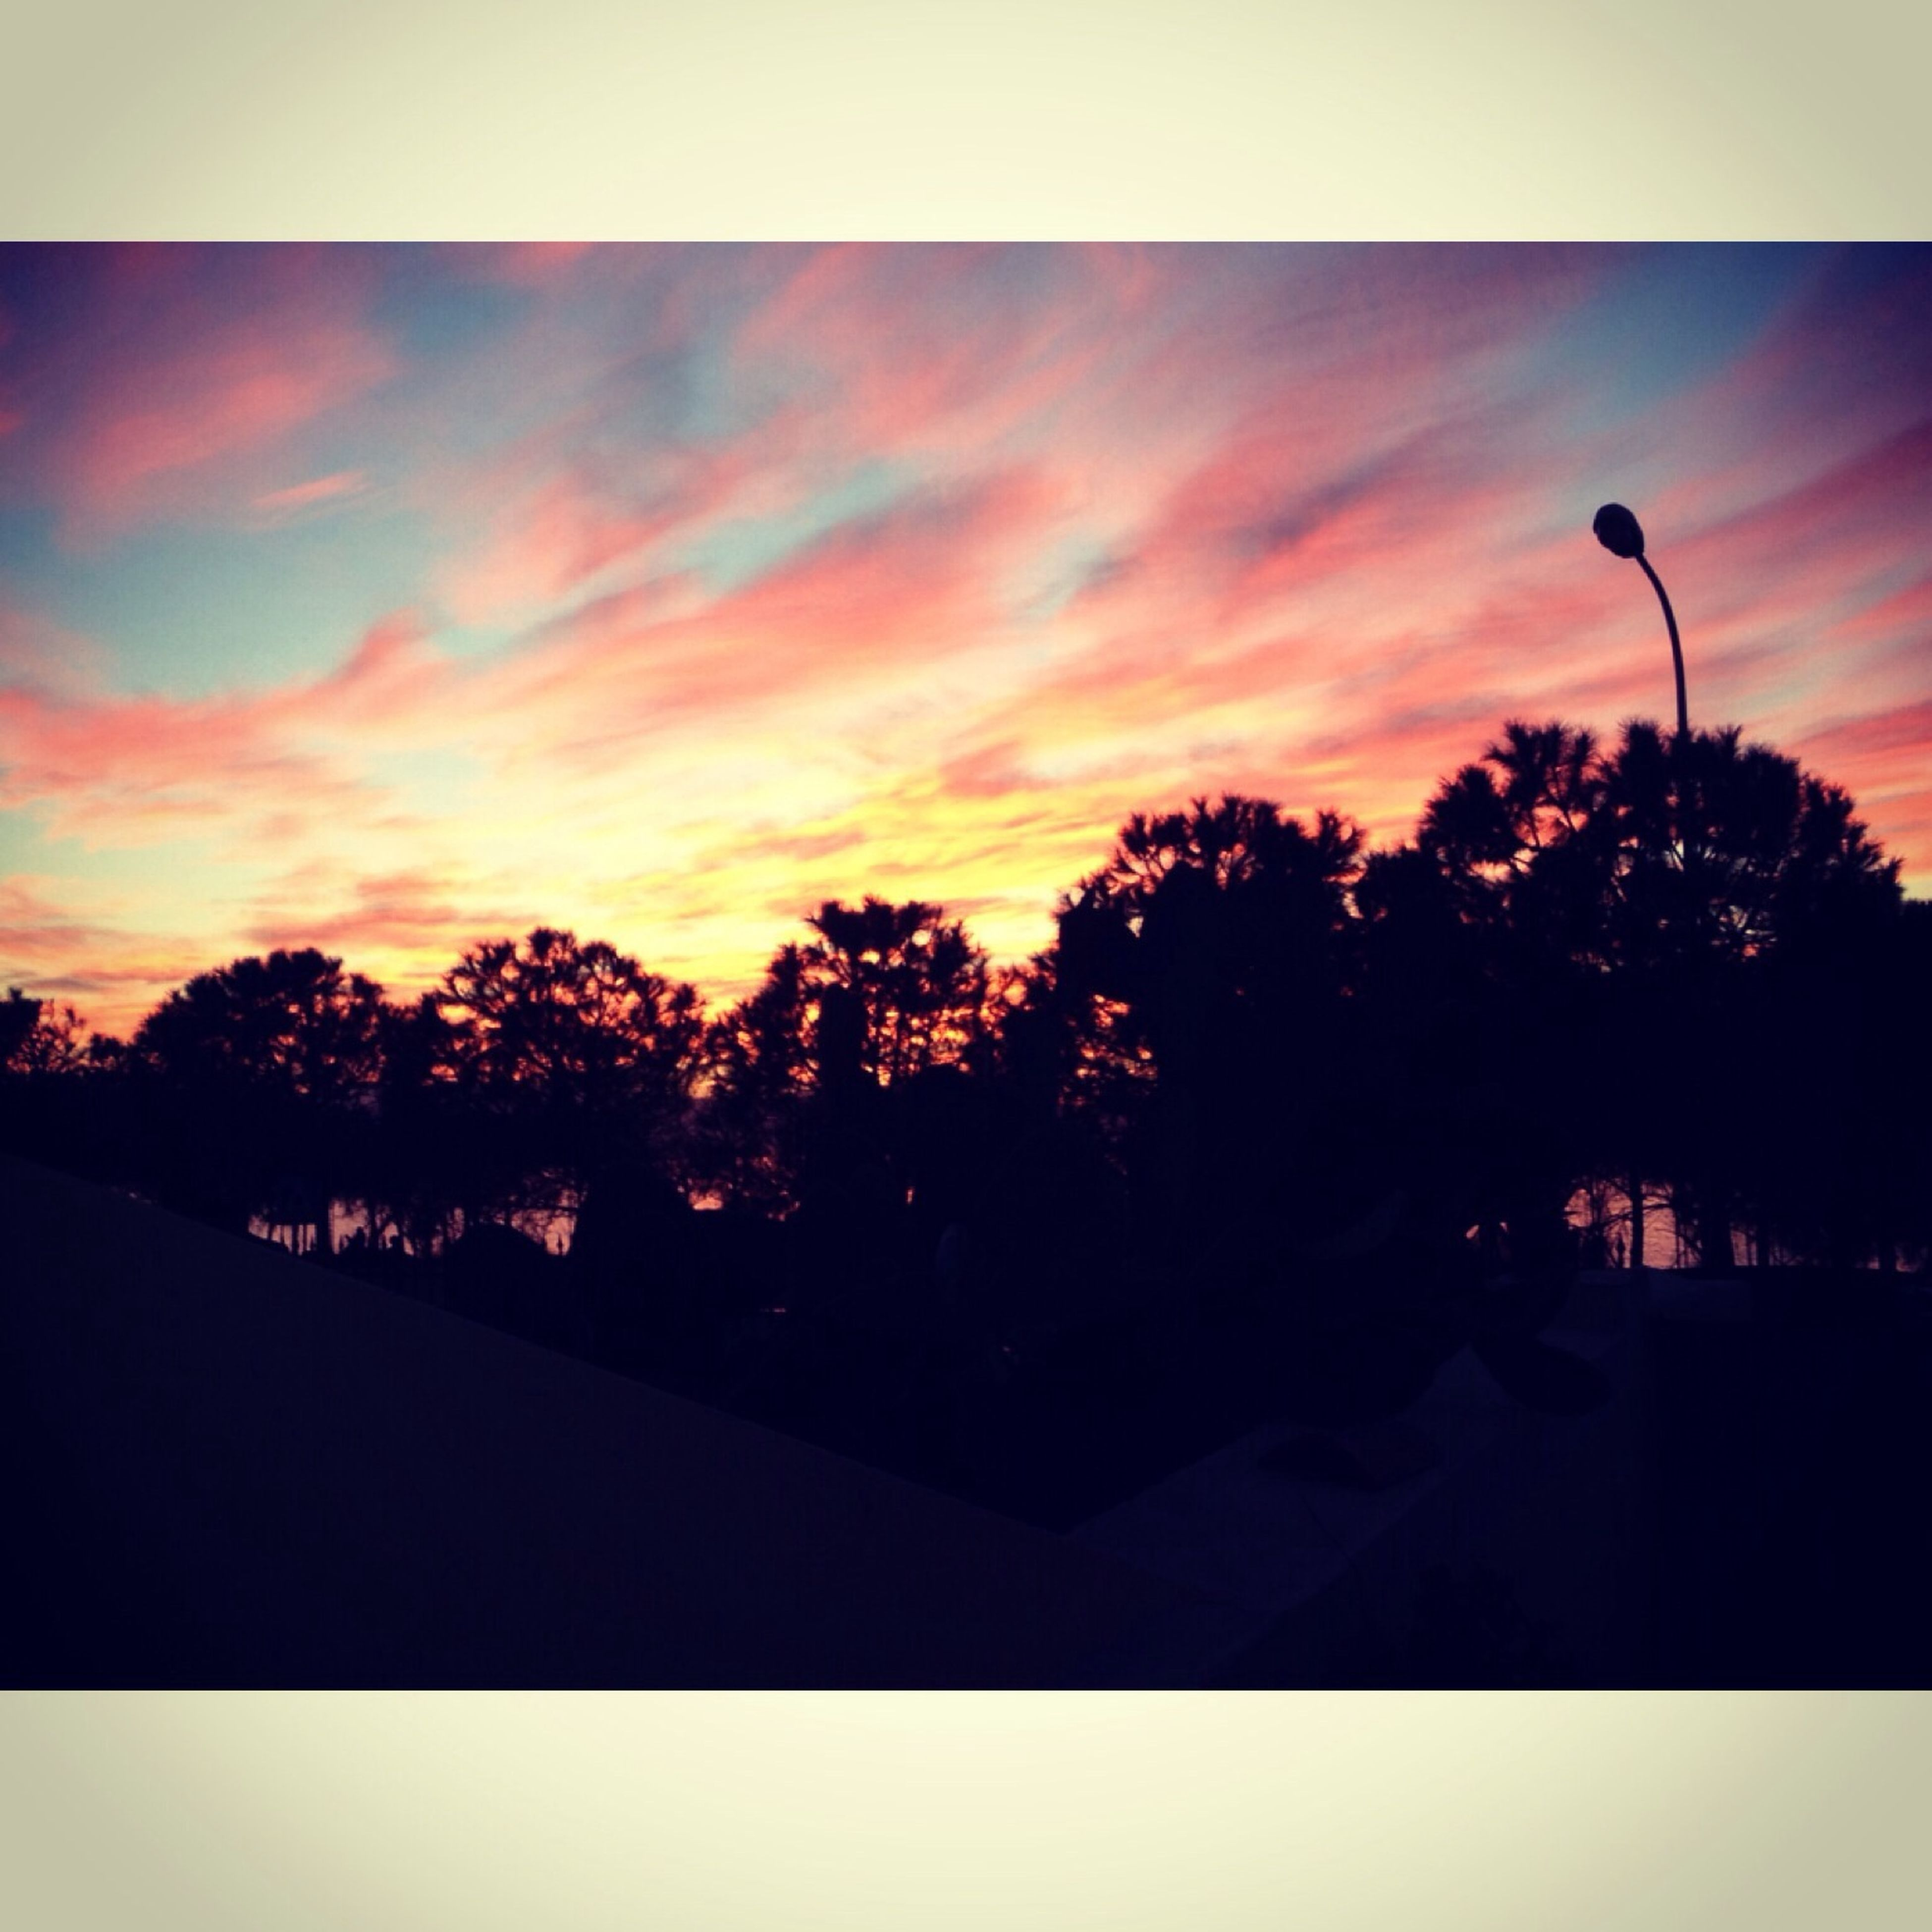 sunset, silhouette, tree, sky, orange color, cloud - sky, tranquility, beauty in nature, scenics, transfer print, tranquil scene, nature, auto post production filter, dusk, cloud, street light, idyllic, outdoors, no people, dramatic sky